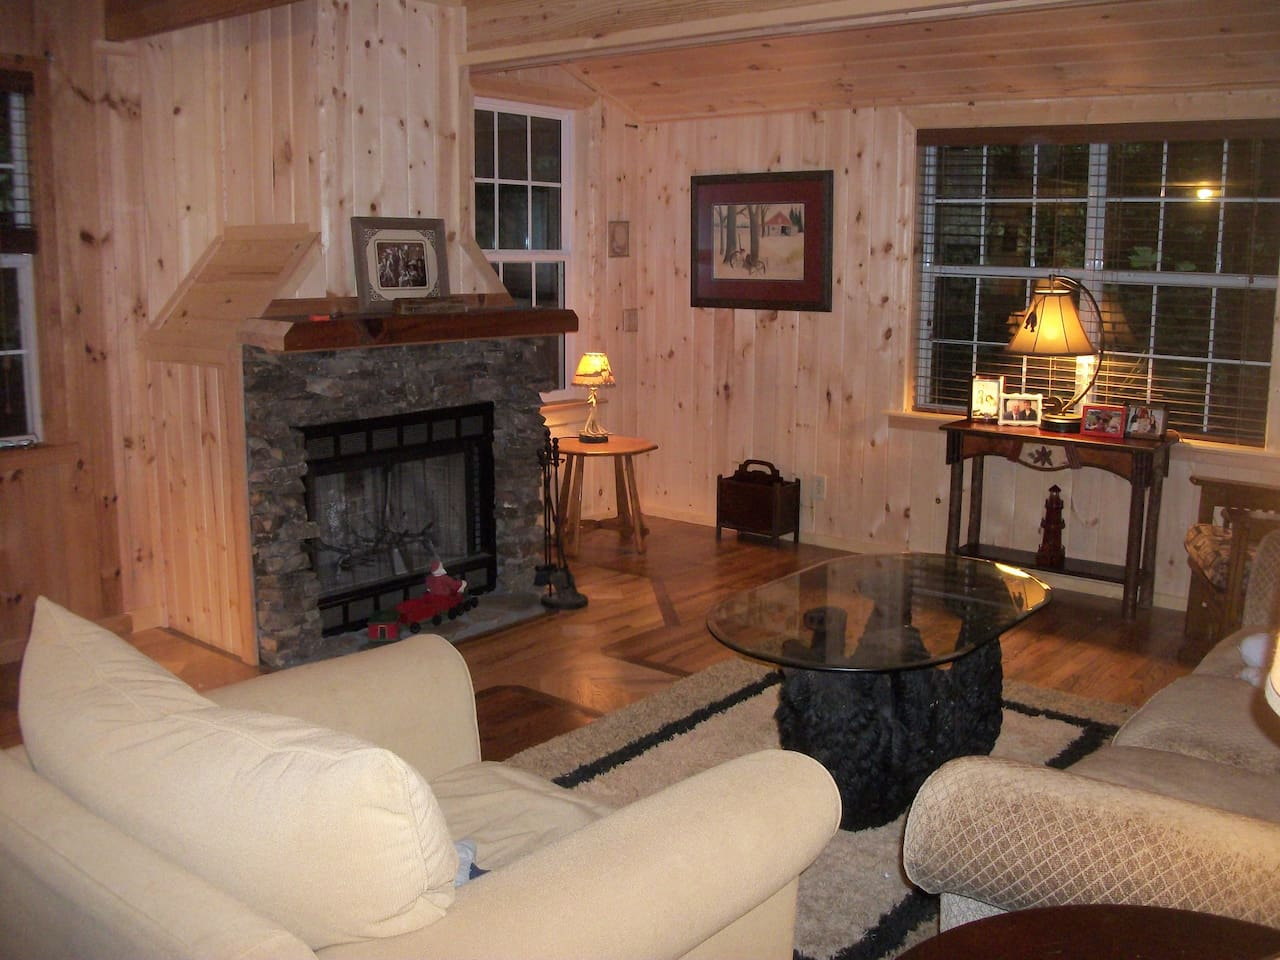 A comfortable living room with fireplace, TV/DVD, and rustic cabin decor.